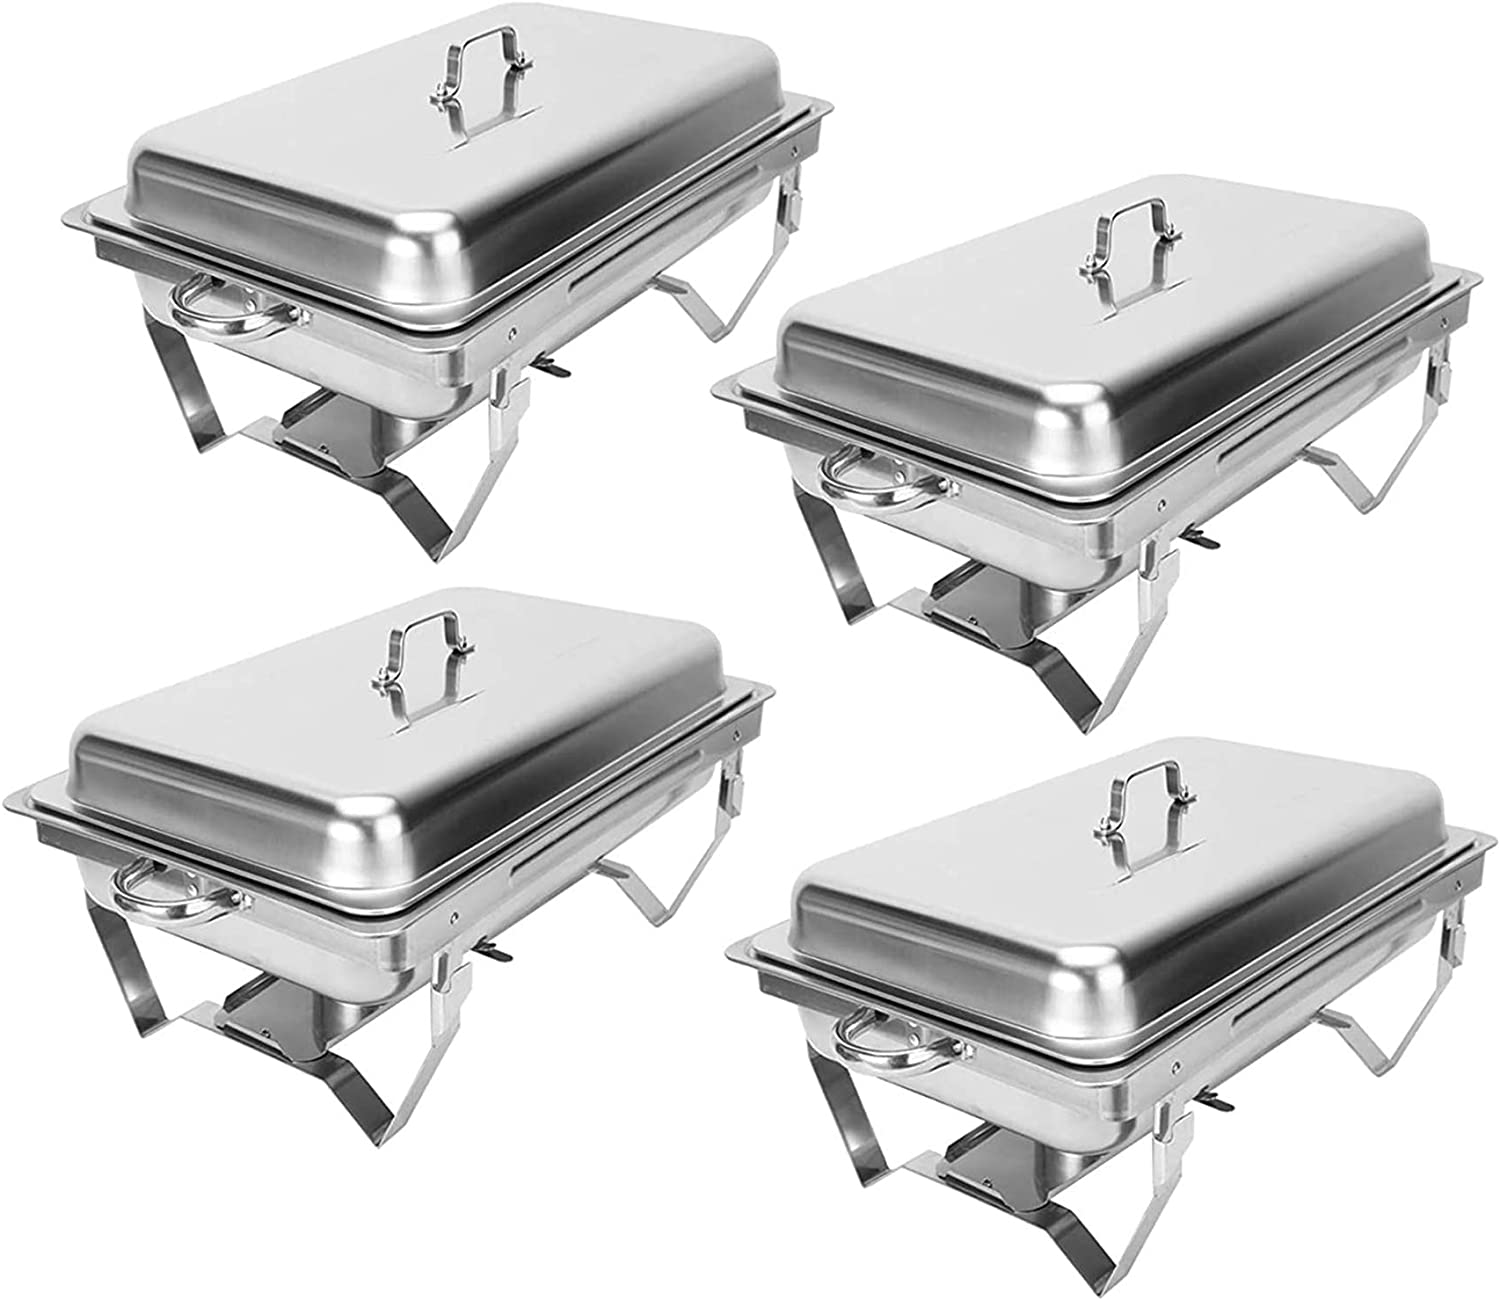 CO-Z 4 Pack Chafer Popular Chafing Dish Stainless Max 73% OFF High-Grade 8Q Set S 9L